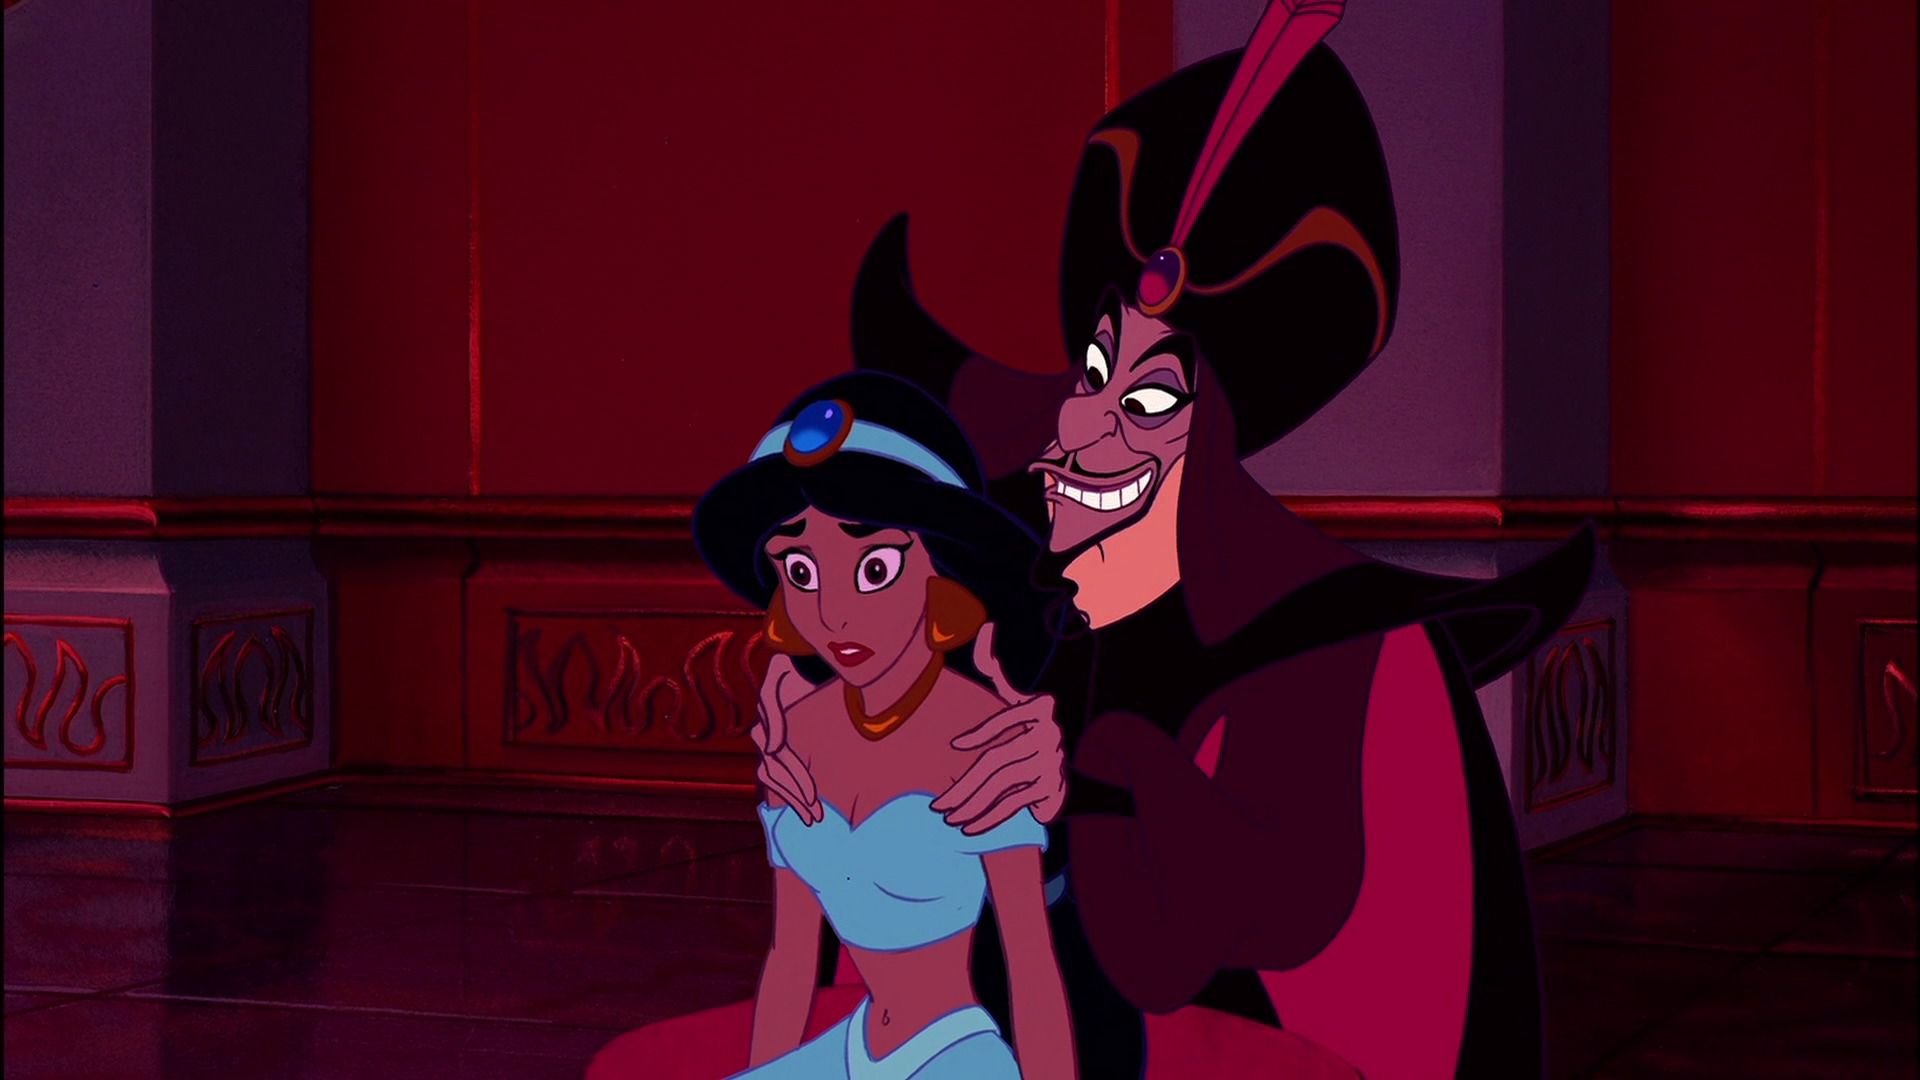 Jafar I Am Exceeding Sorry Princess Not With Images